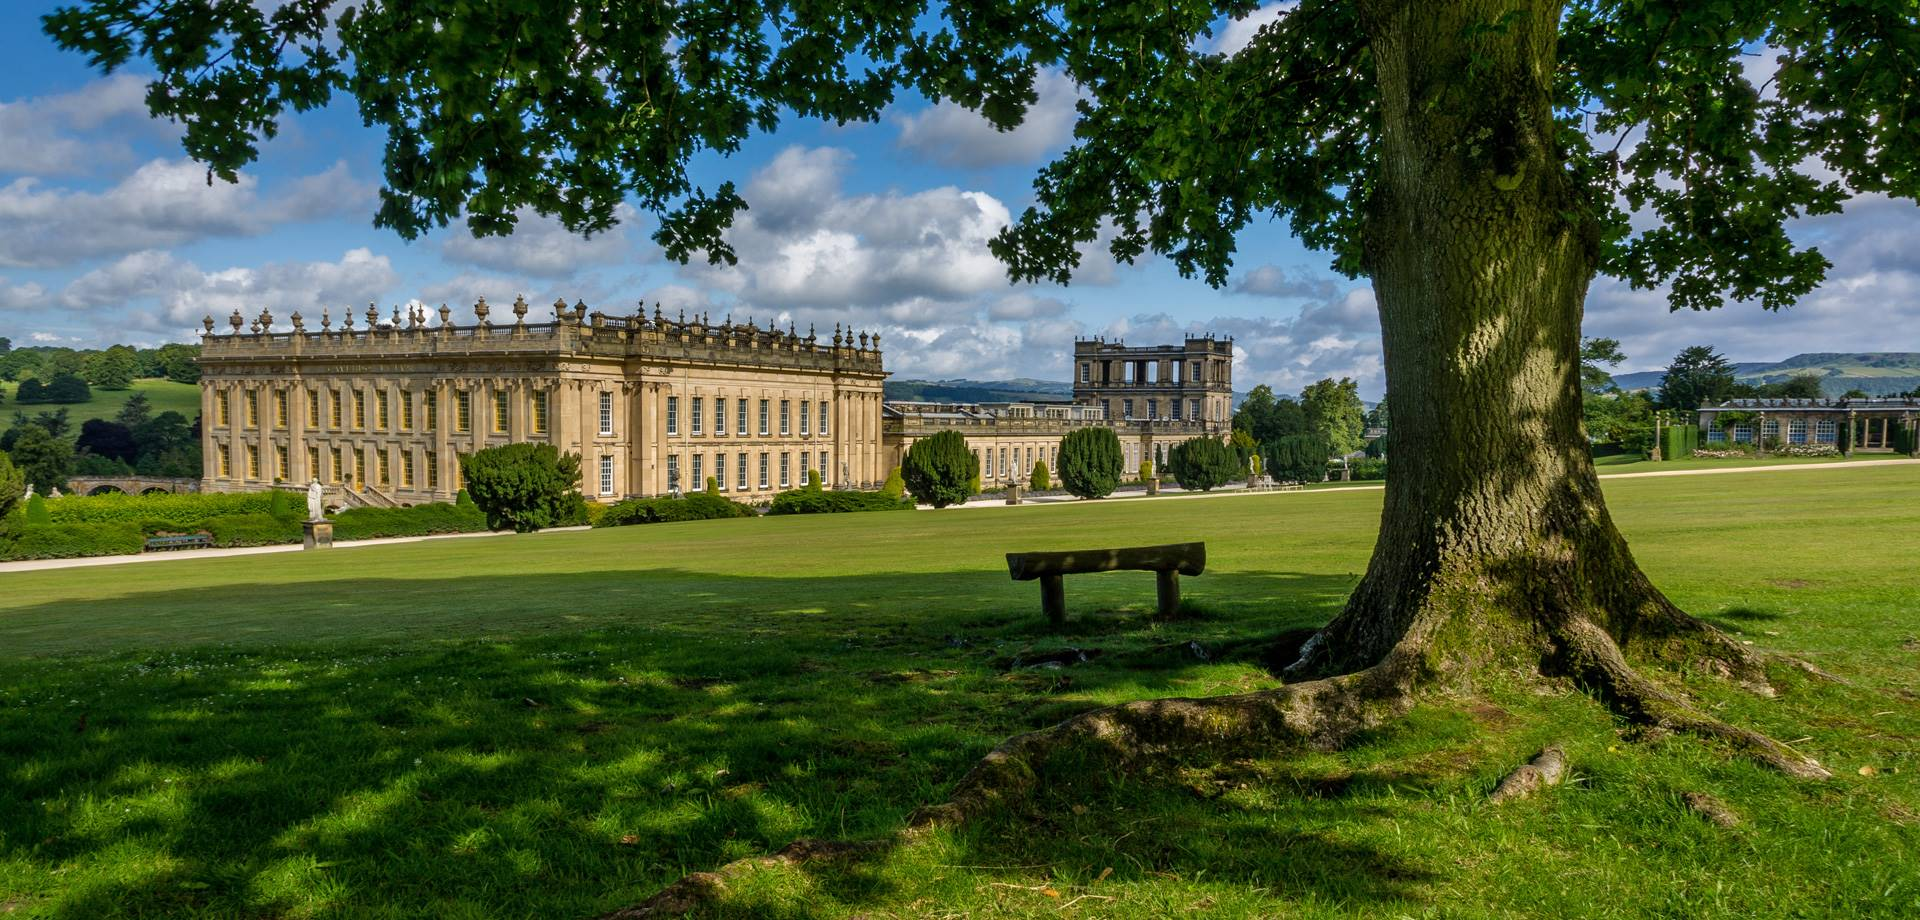 About Chatsworth